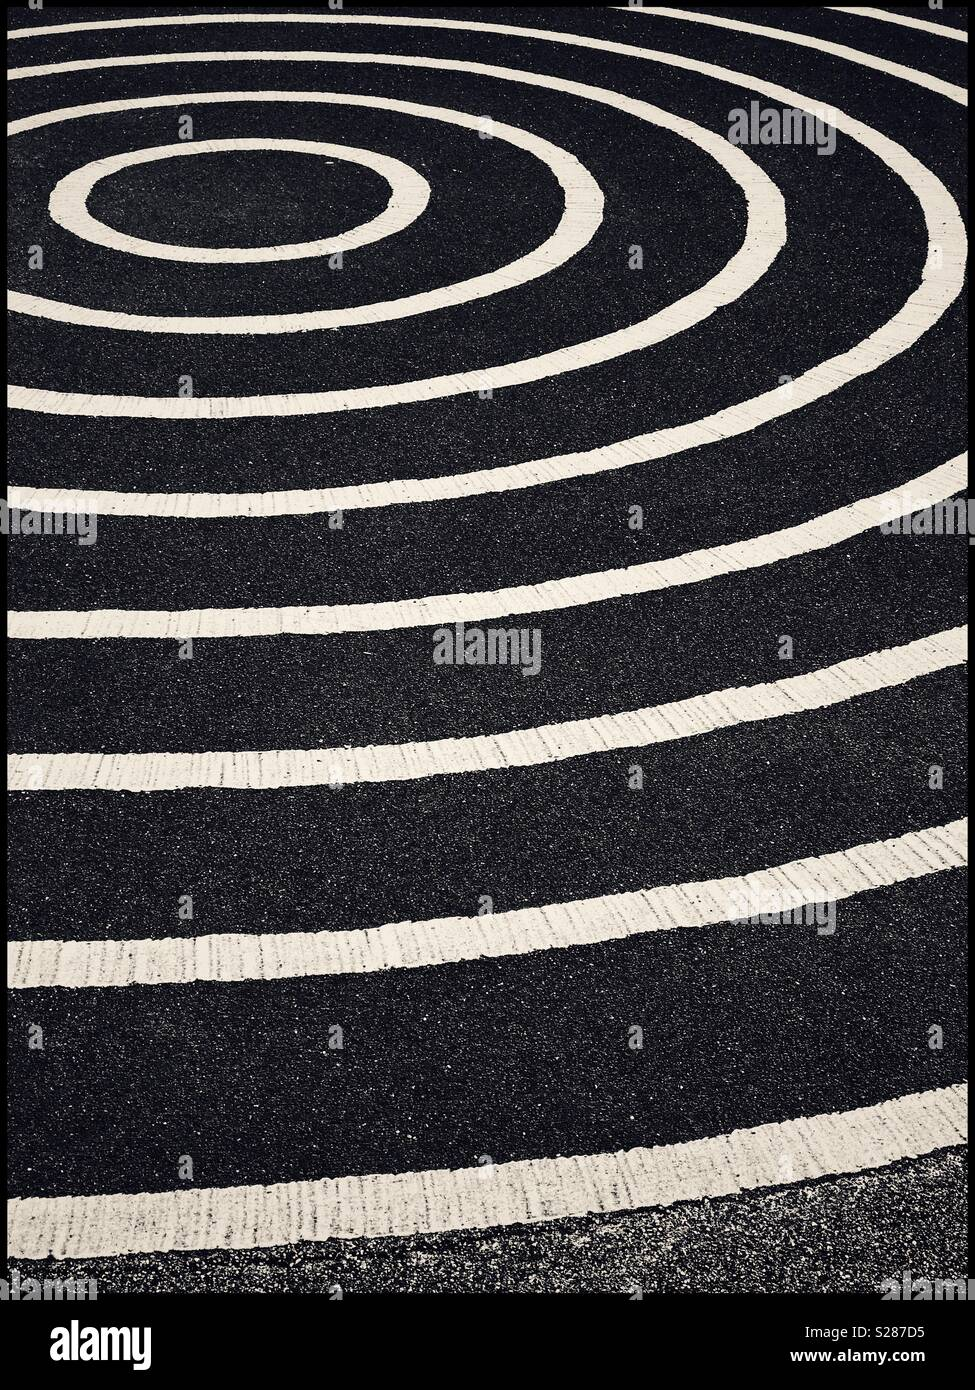 A graphic, monochrome image of concentric circles, painted onto a large area of tarmac (asphalt). An image with multiple potential uses. Photo Credit - © COLIN HOSKINS. - Stock Image